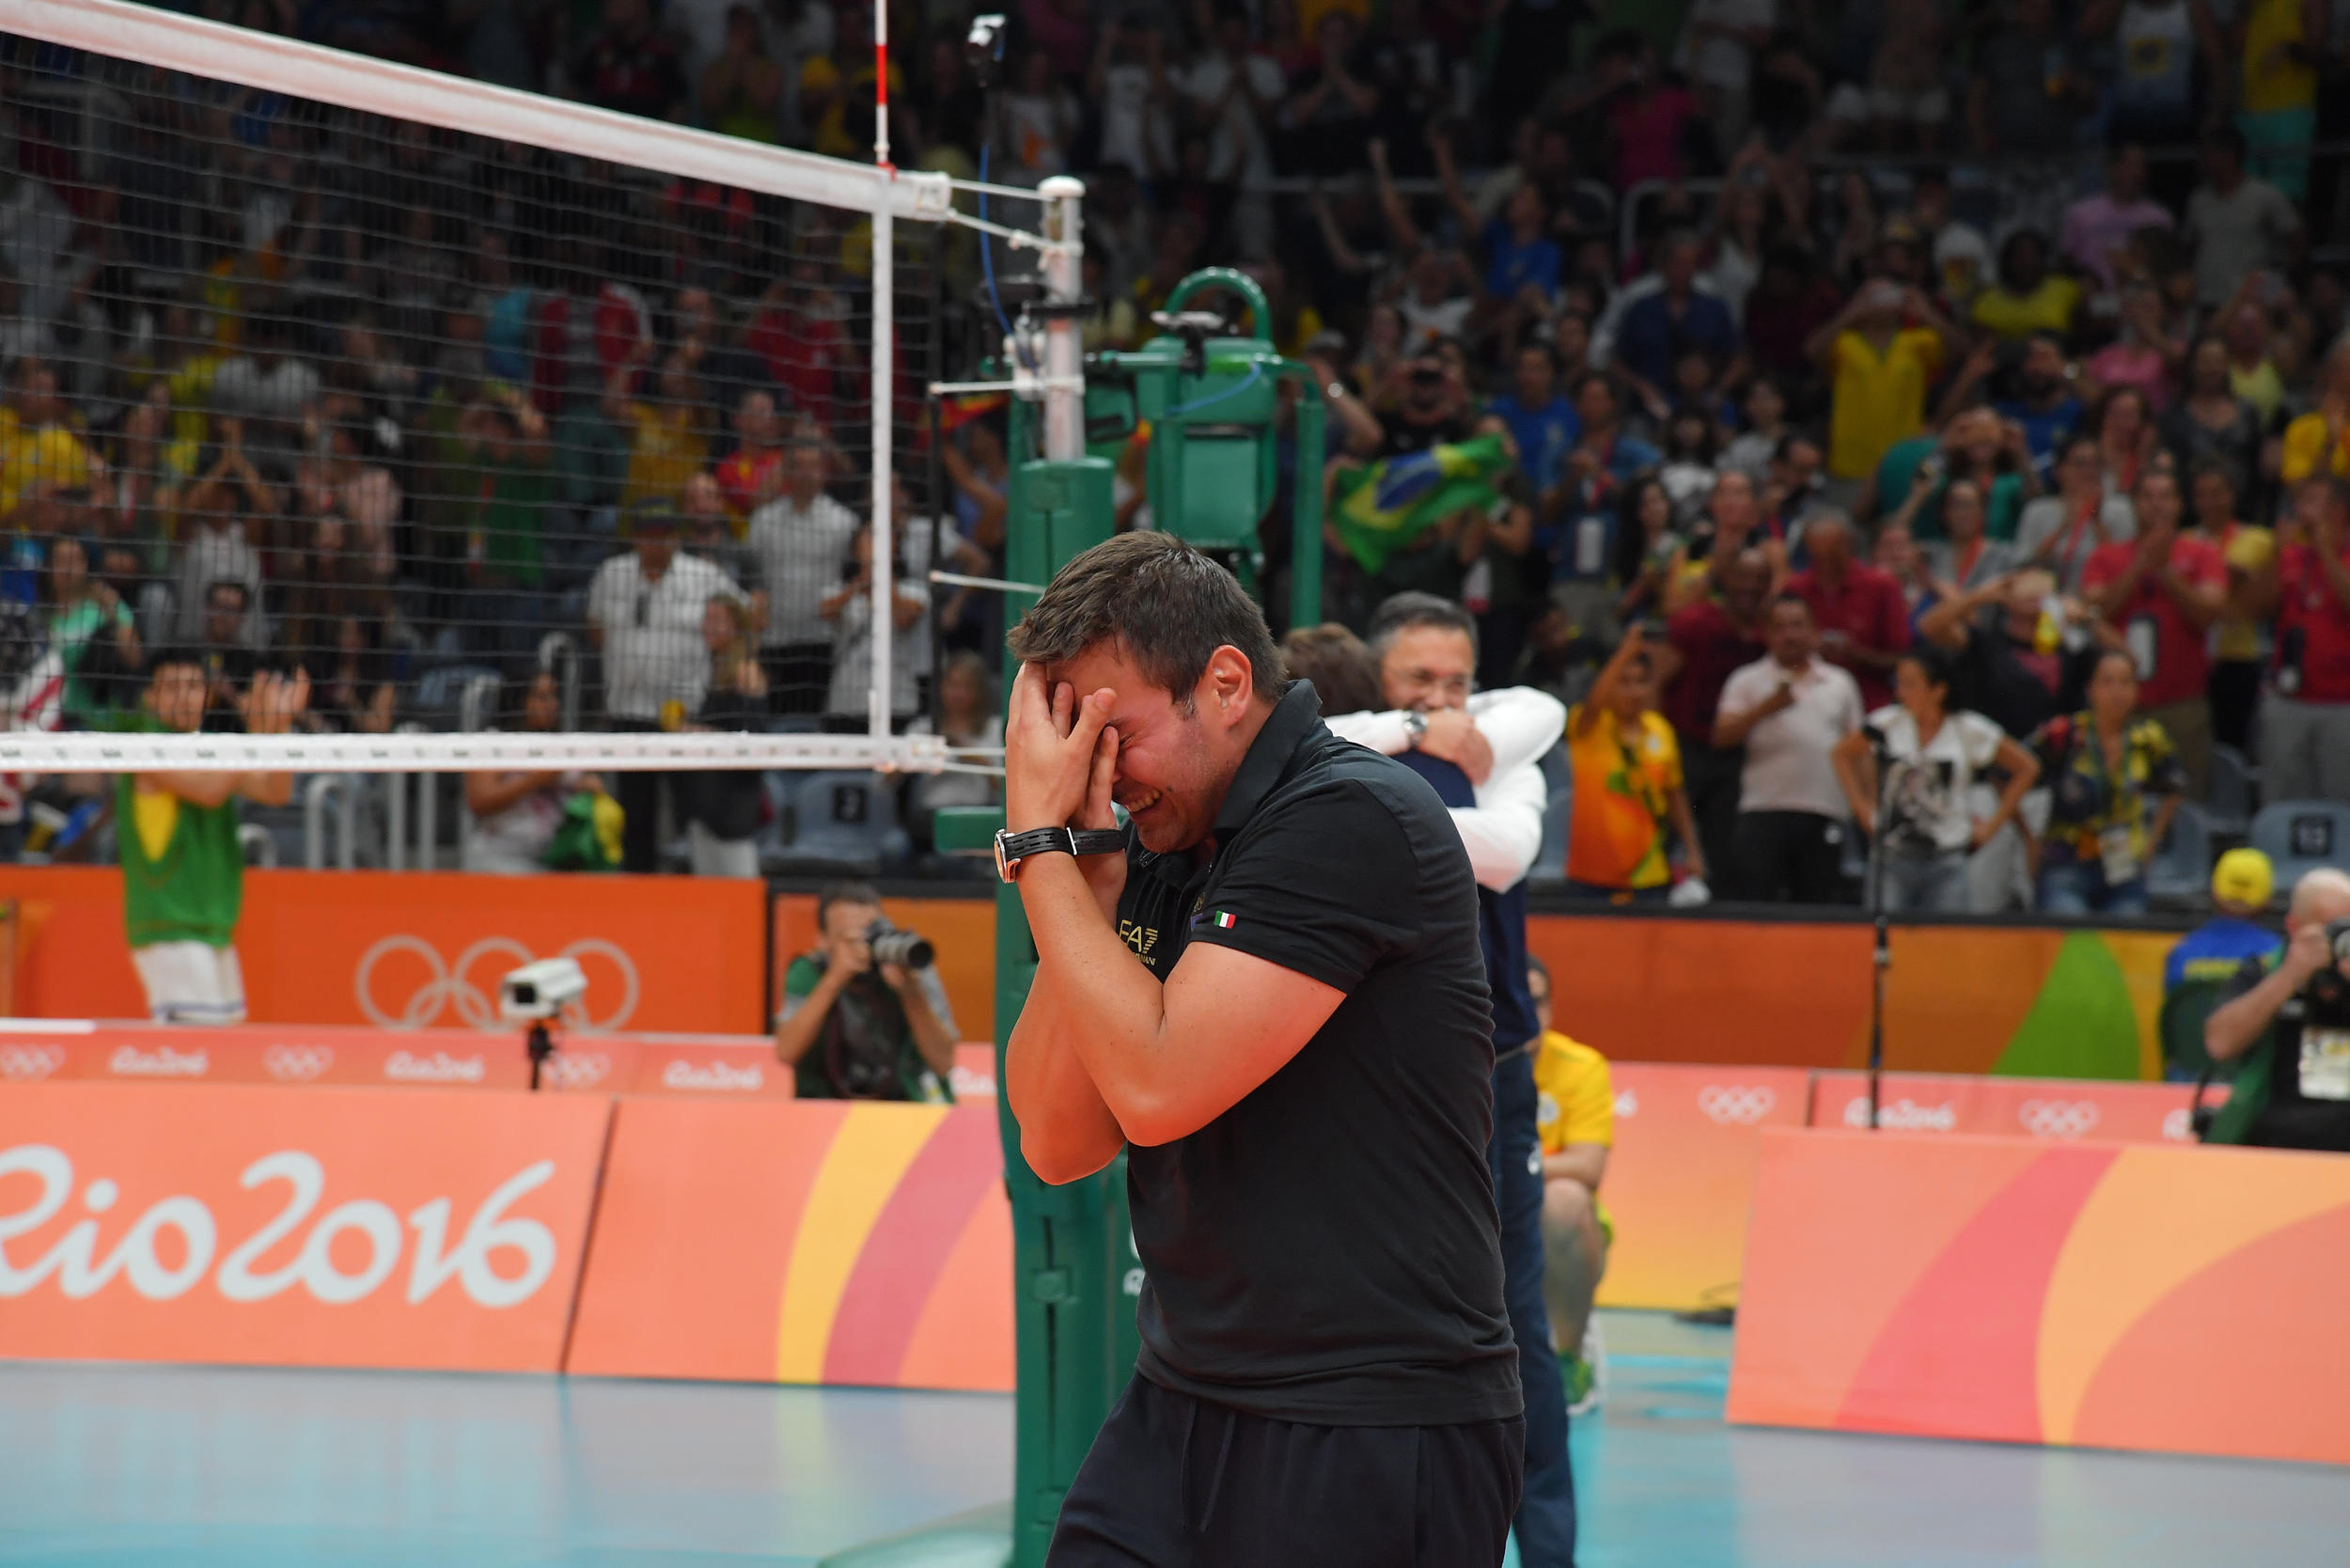 http://www.fivb.org/Vis2009/Images/GetImage.asmx?No=201653370&maxSize=960